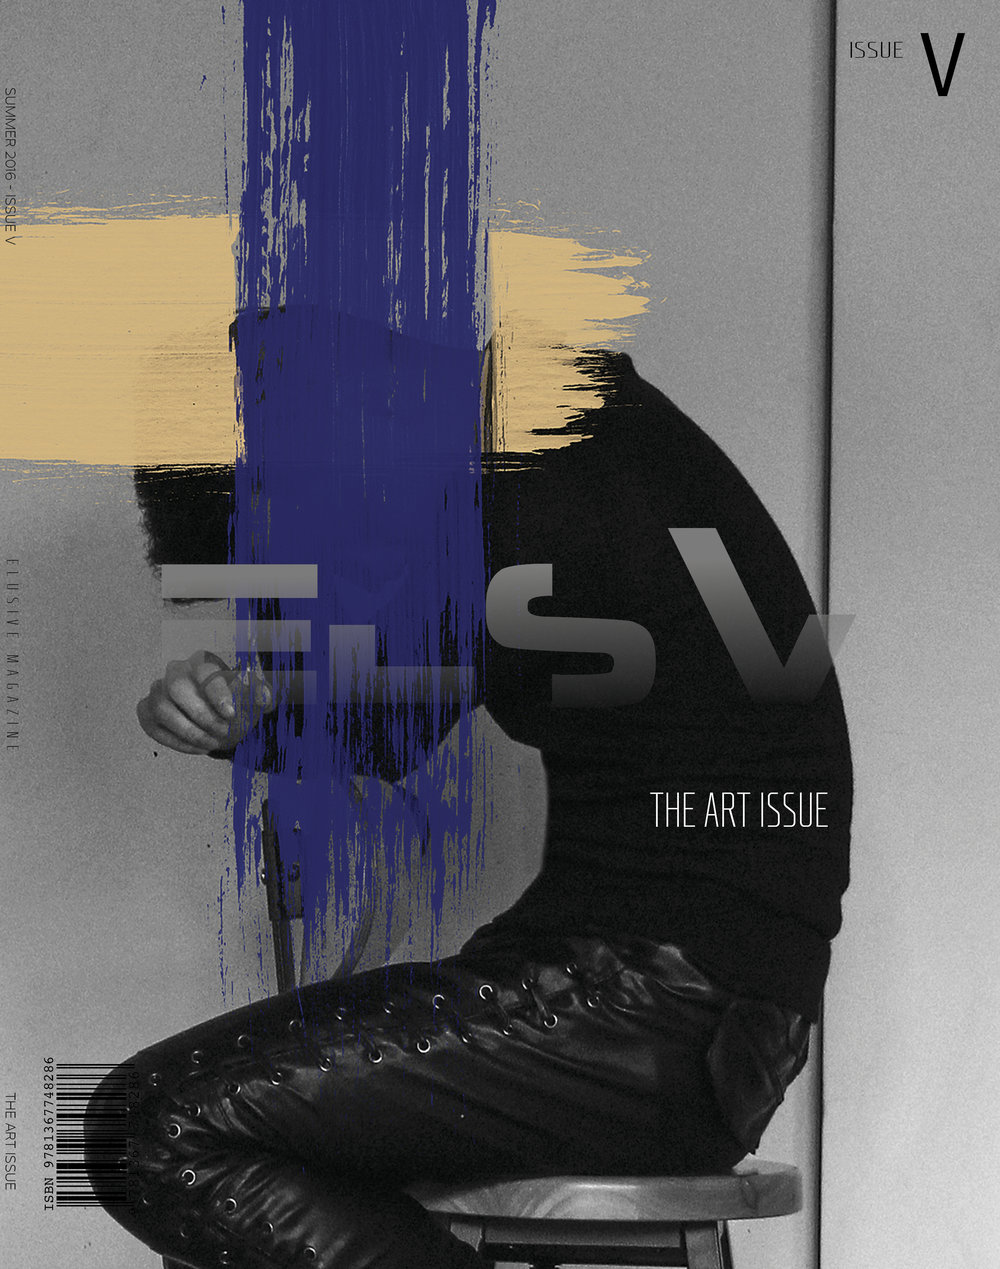 Issue V - The Art Issue